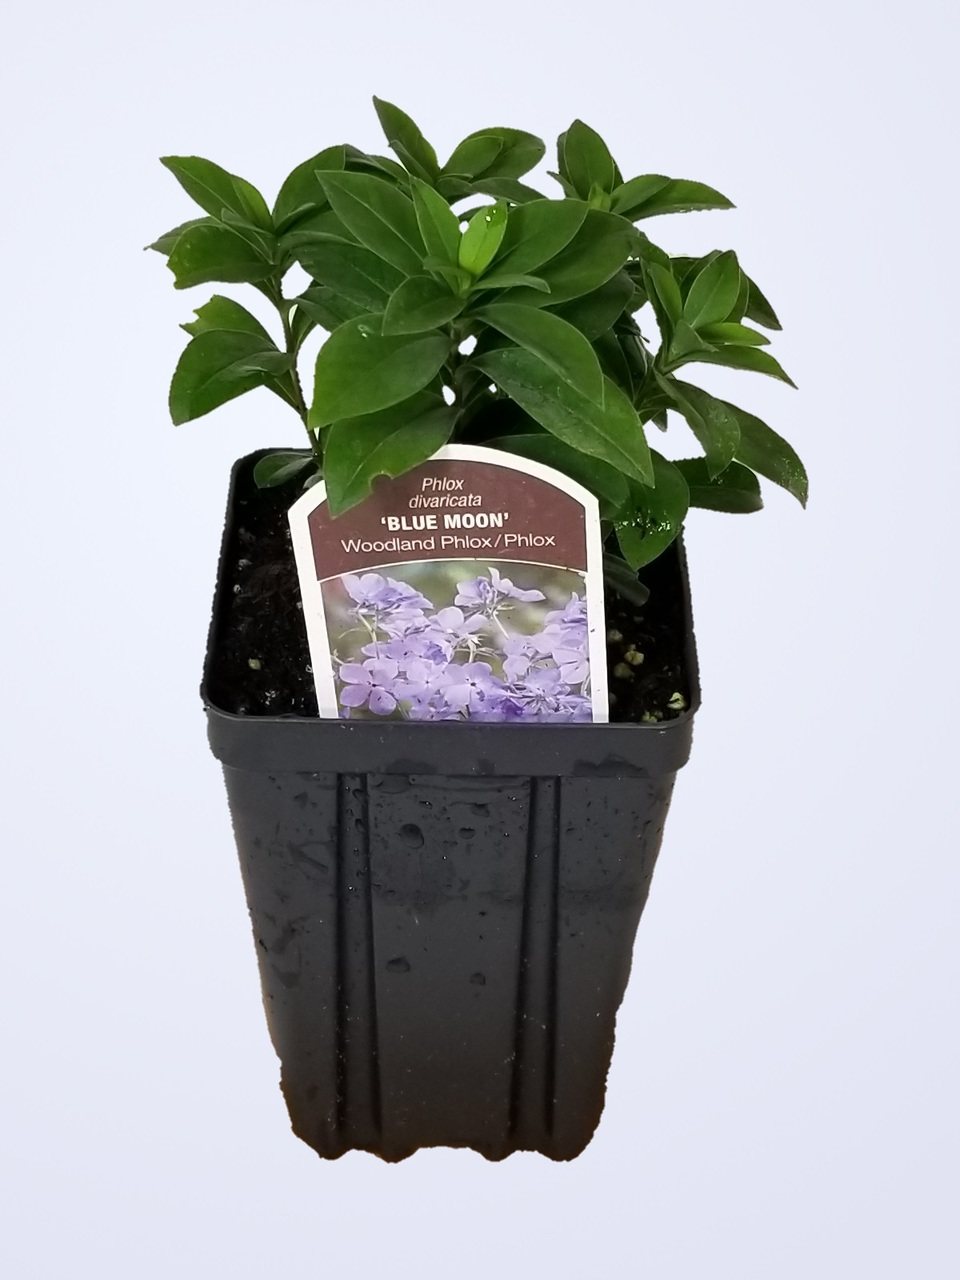 Phlox divaricata 'Blue Moon' - Woodland Phlox Quart Pot Potted Perennial Flower by GreenTec Nursery